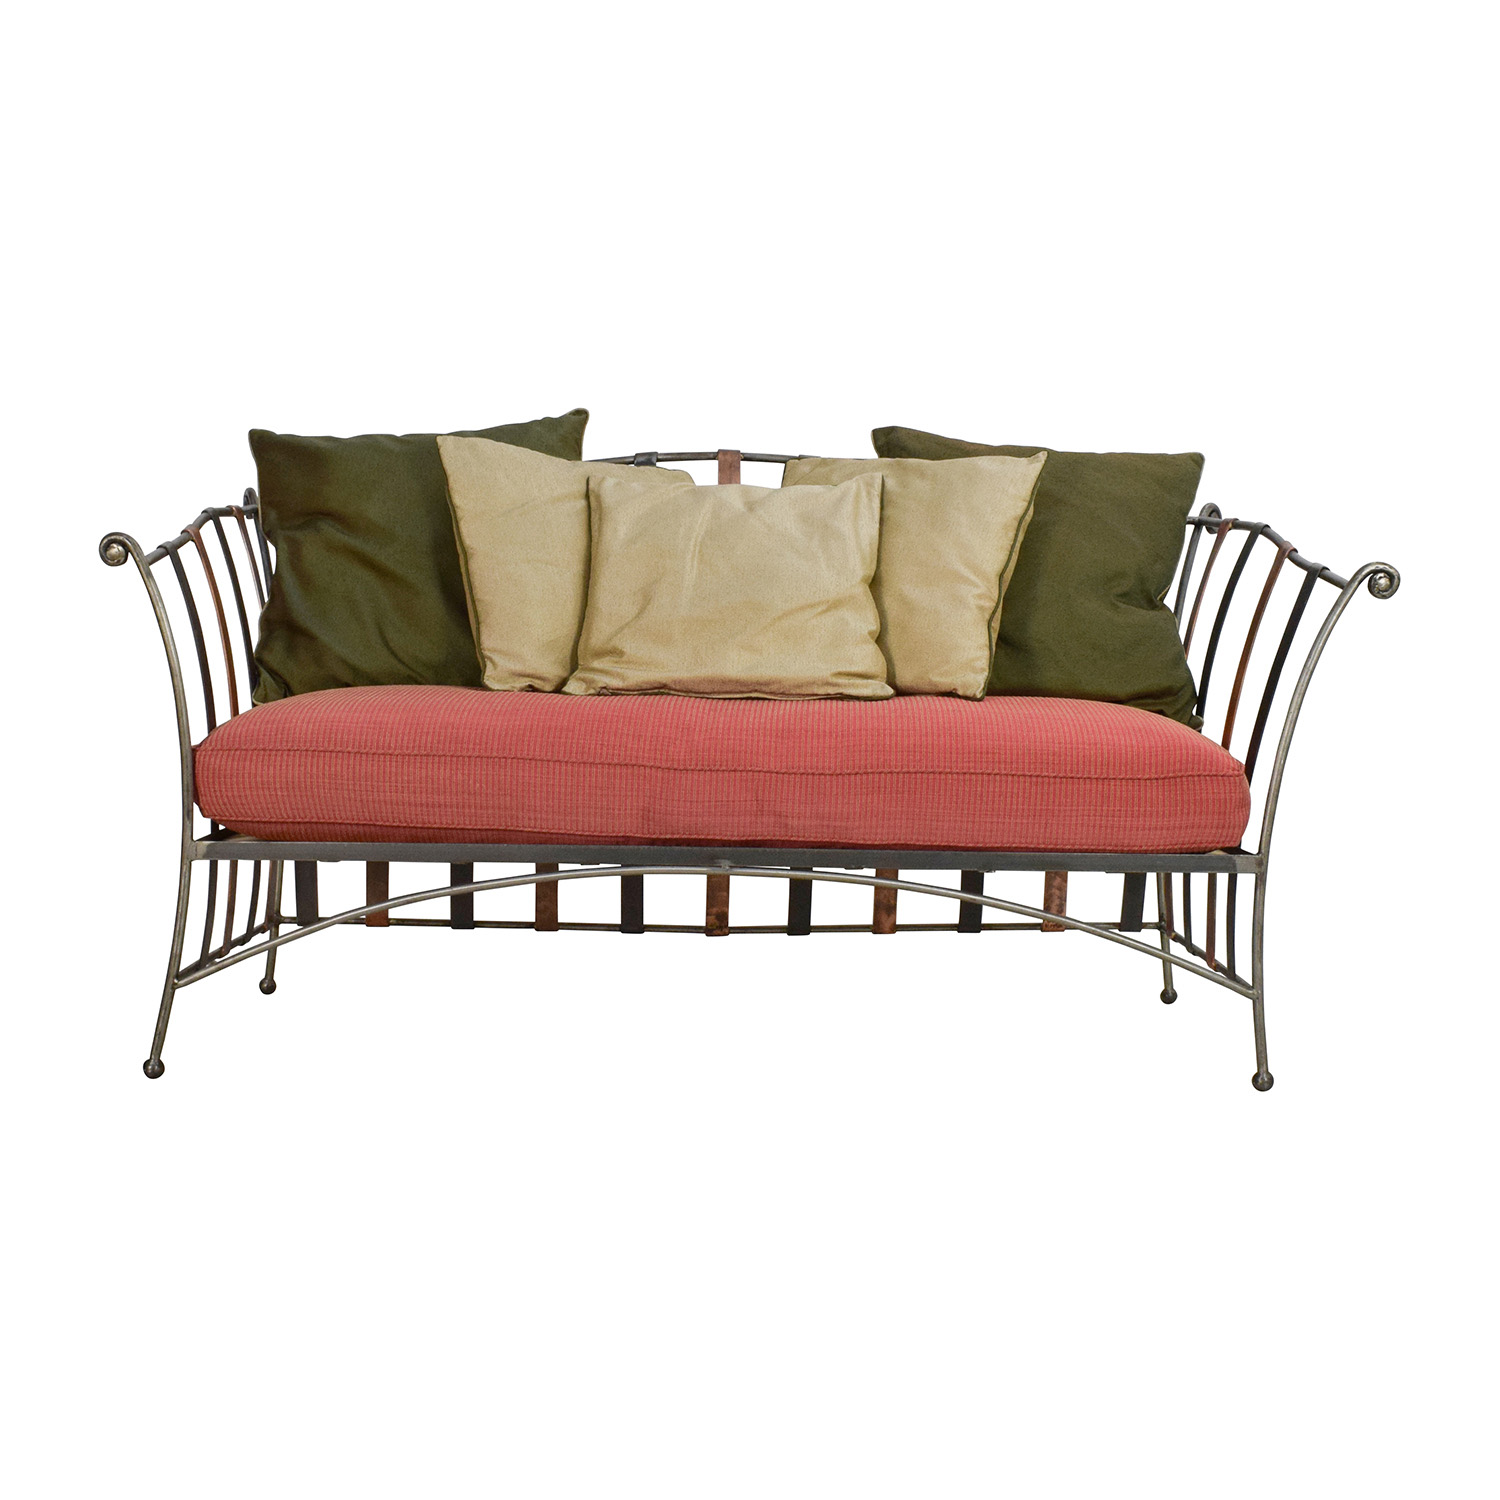 wrought iron sofa set in pune beds uk online india brokeasshome